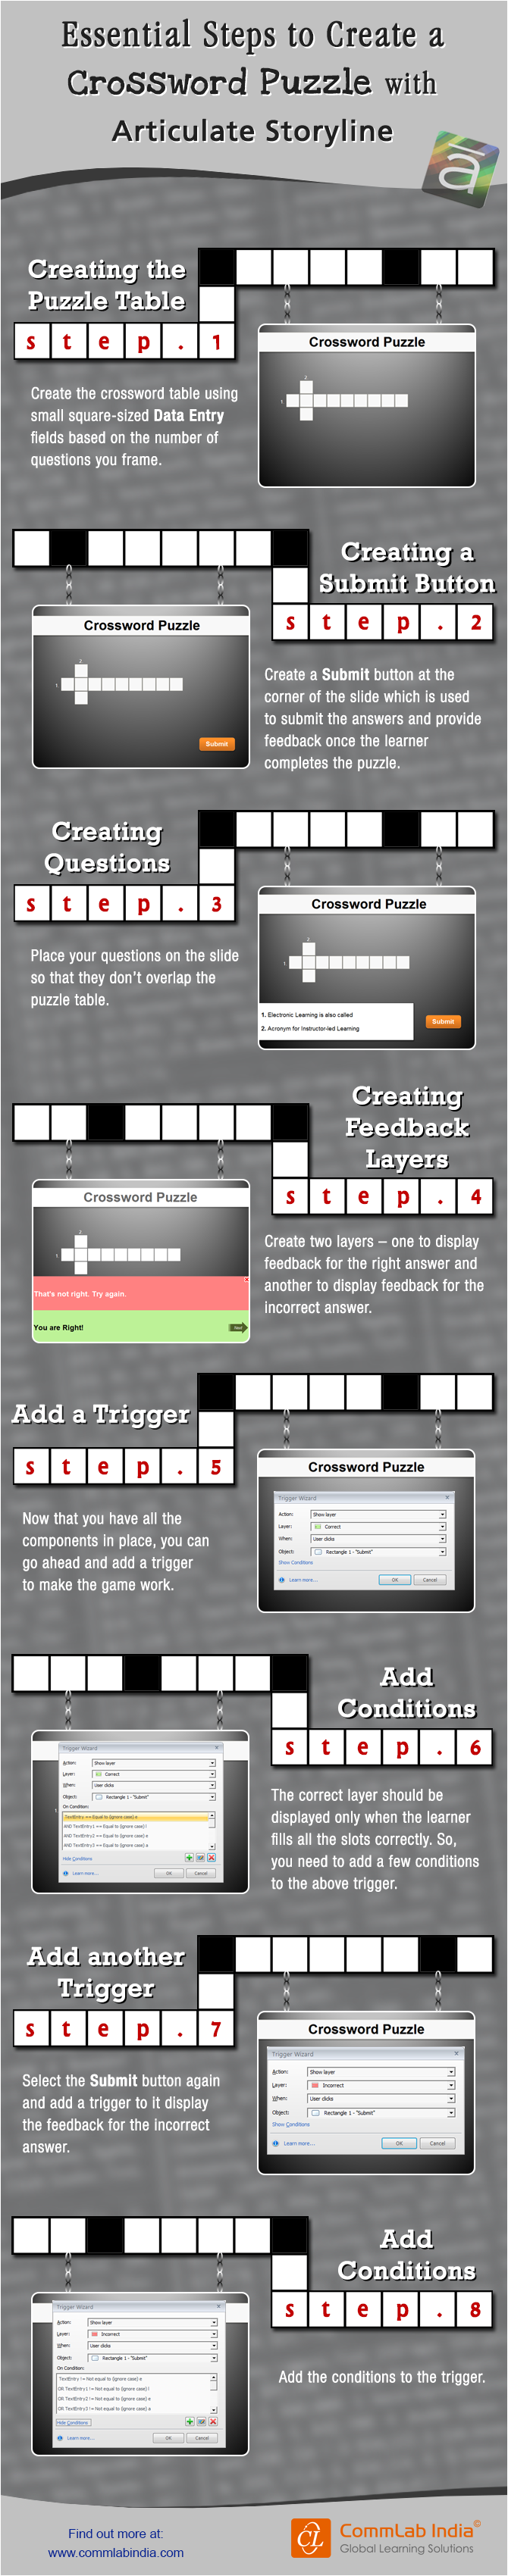 Steps to Create a Crossword Puzzle in Articulate Storyline [Infographic]